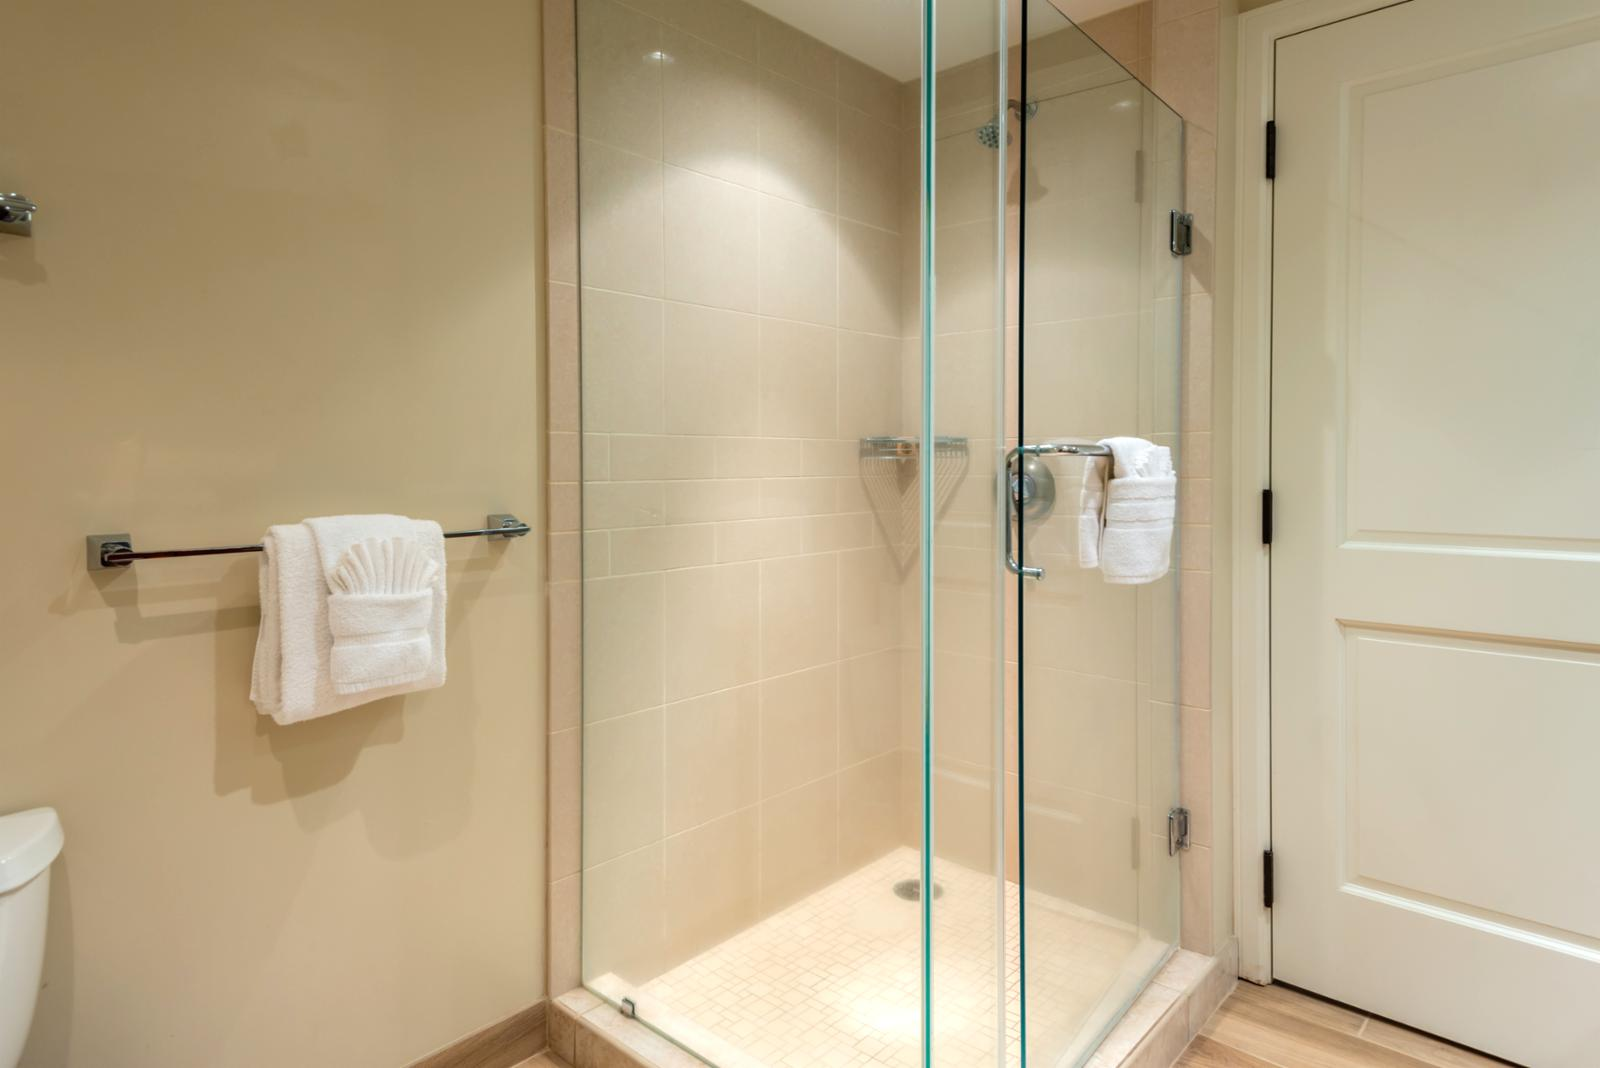 Floor to ceiling LARGE glass enclosed shower with gorgeous lighting accents